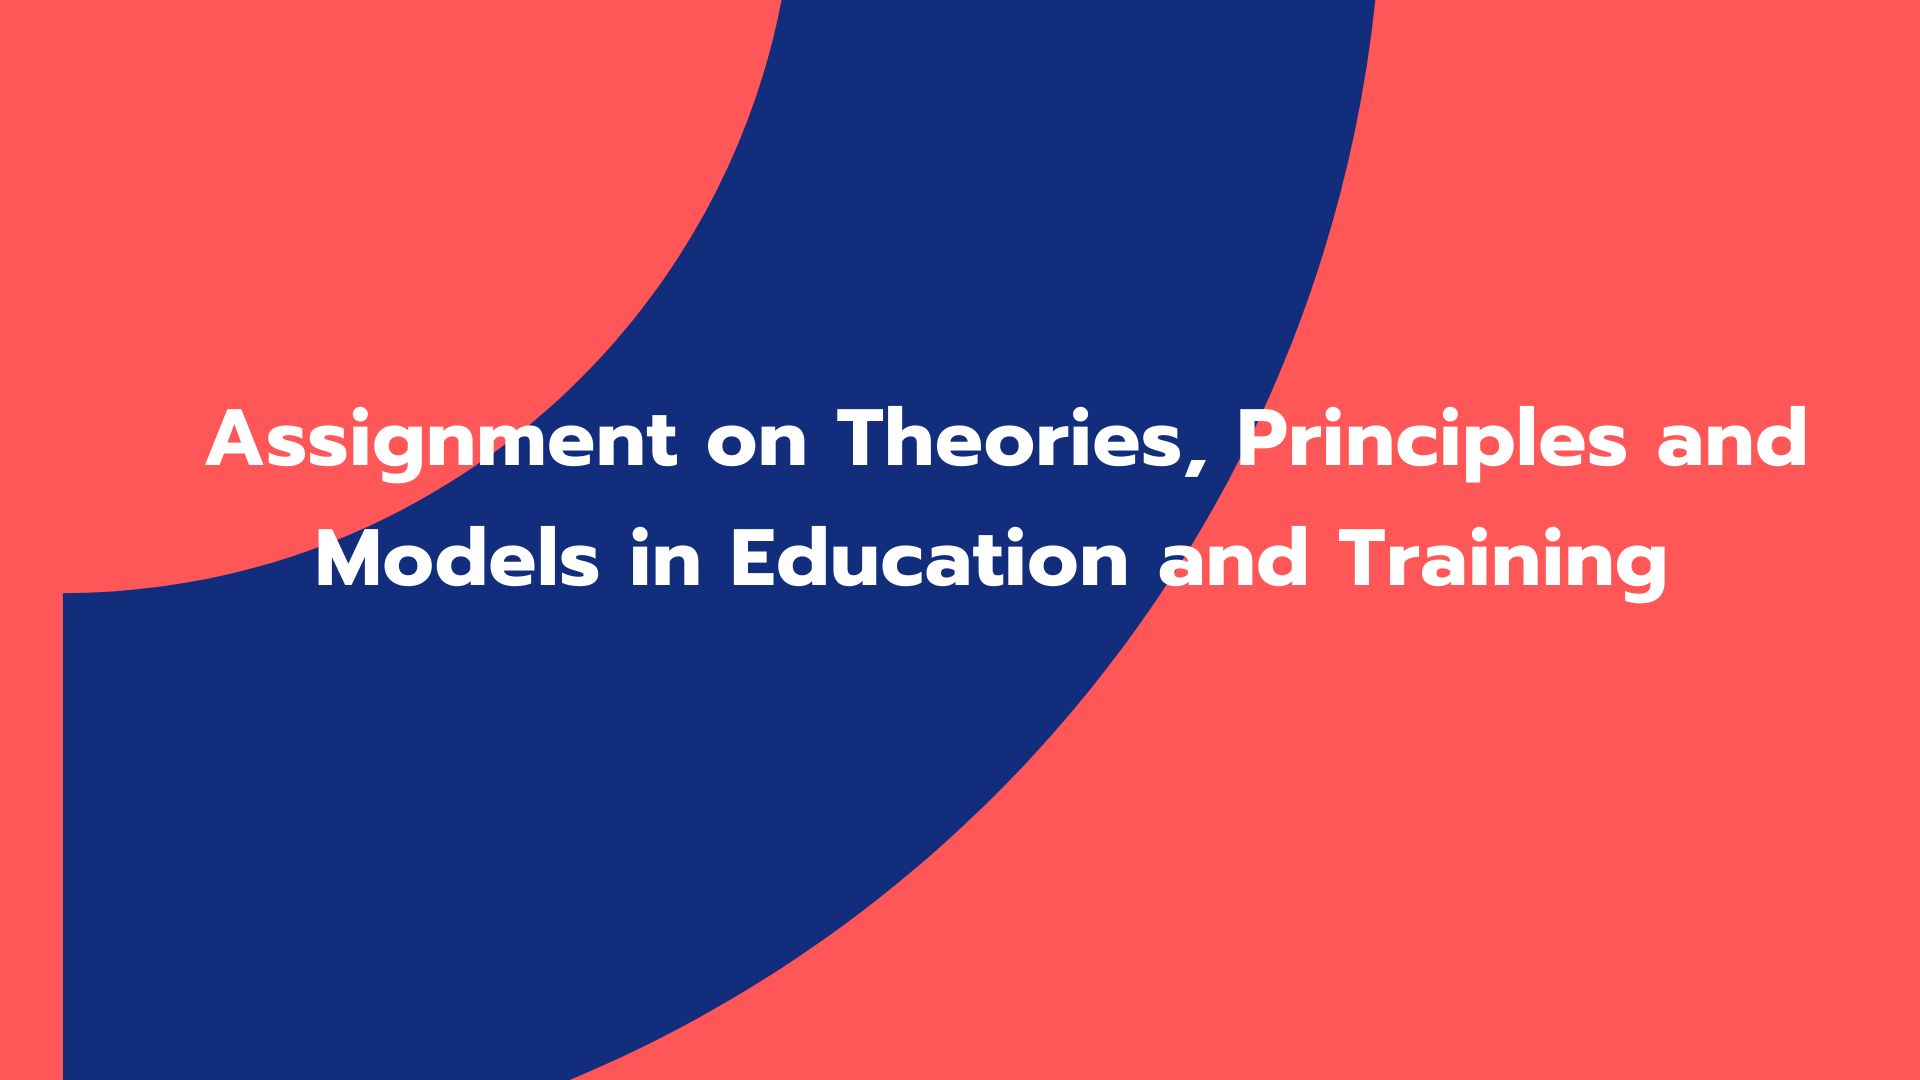 Assignment on Theories, Principles and Models in Education and Training